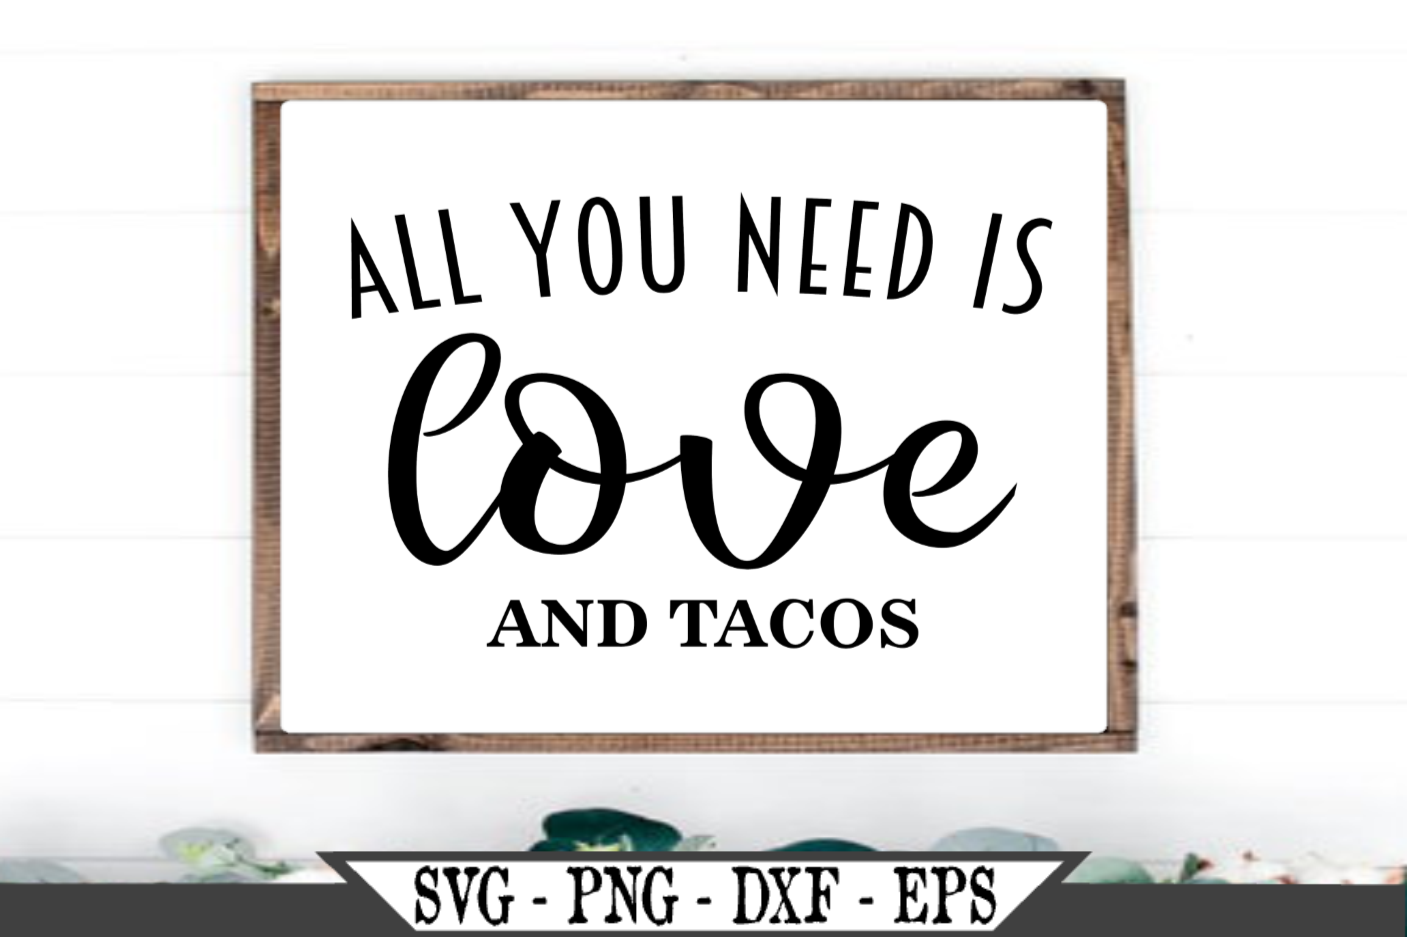 All You Need Is Love And Tacos SVG example image 1